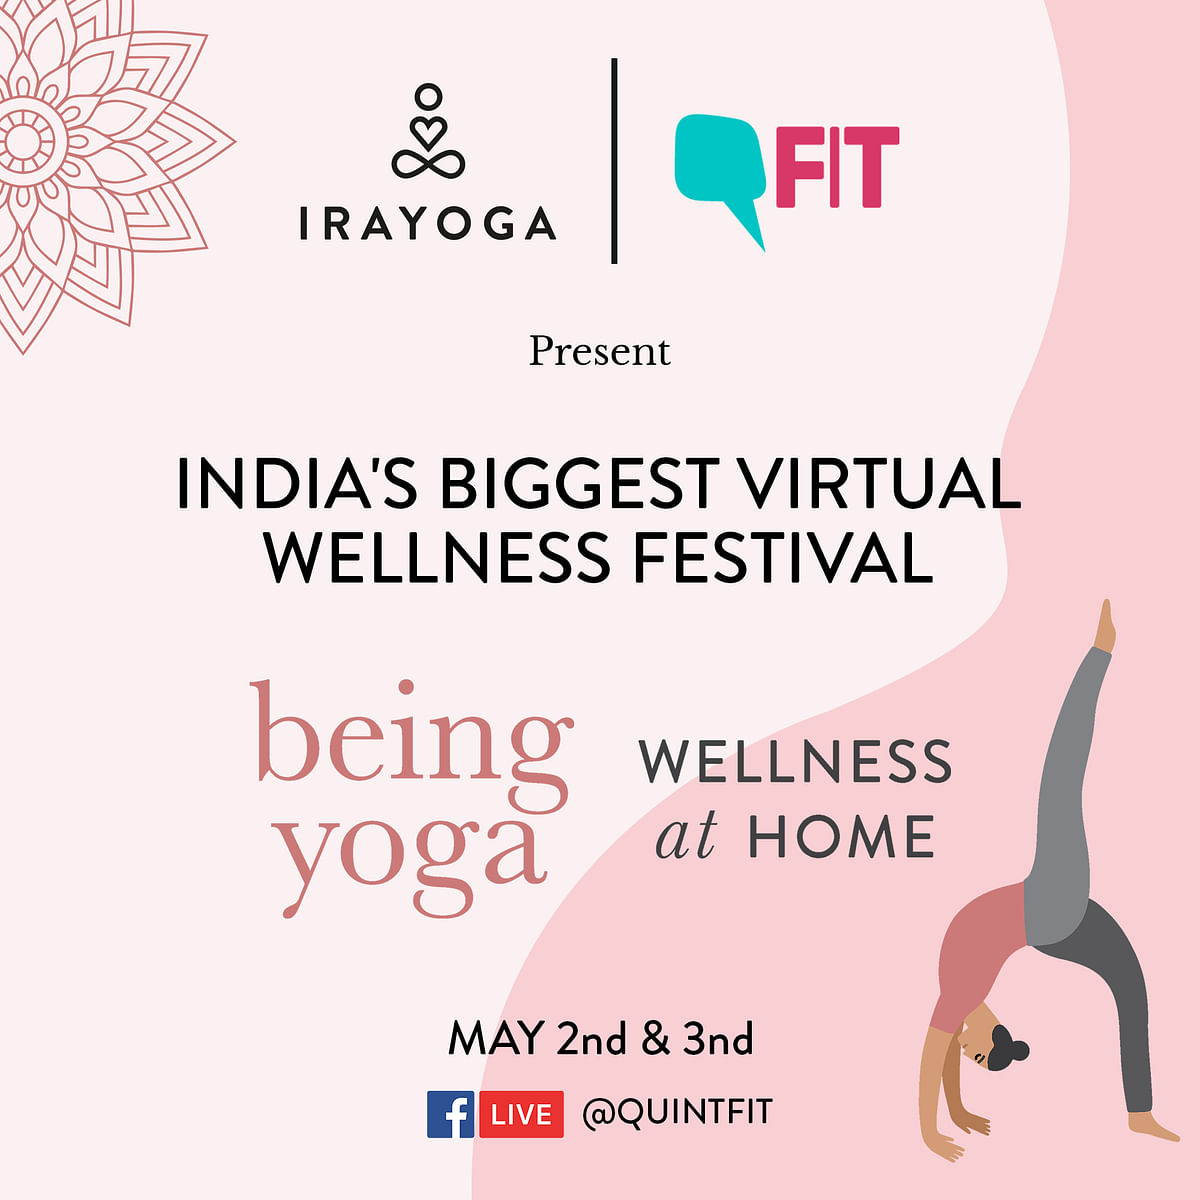 FIT & Ira Yoga Bring You India's Biggest Virtual Wellness Festival